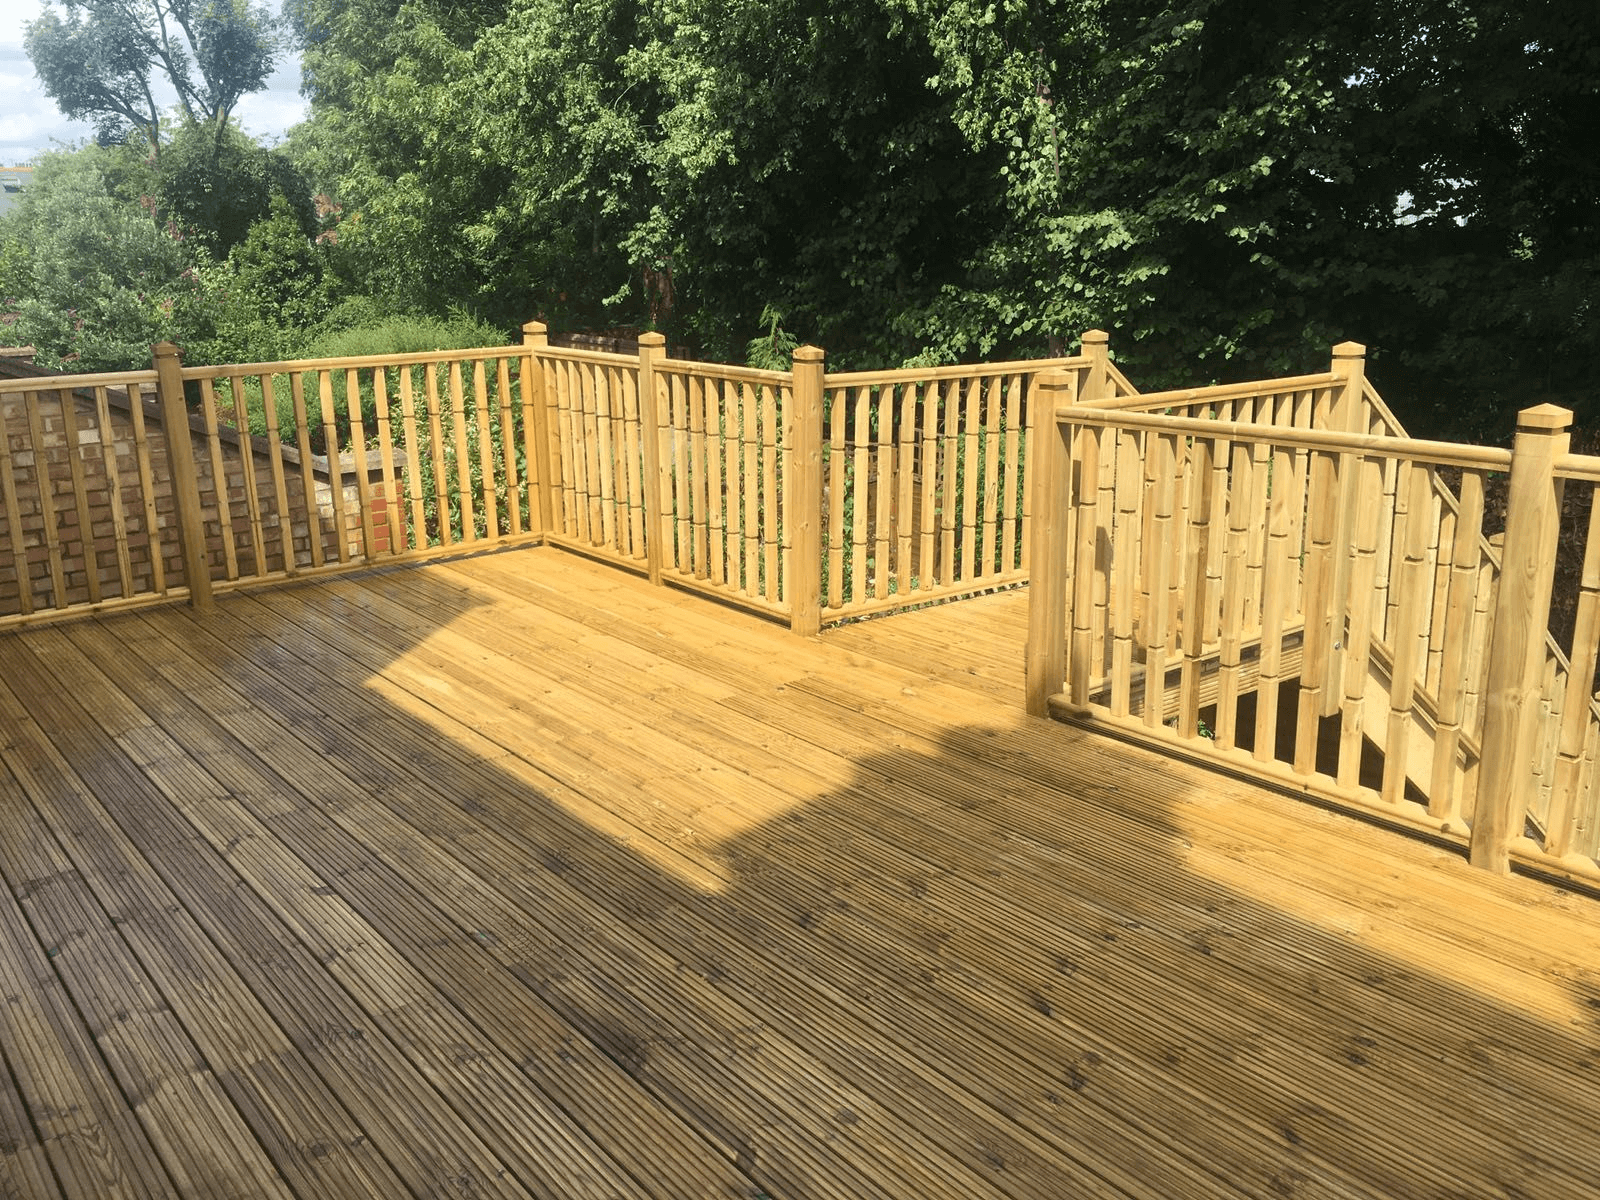 SOFTWOOD RAILING PORCH MATERIAL WITH INTERESTING DESIGN